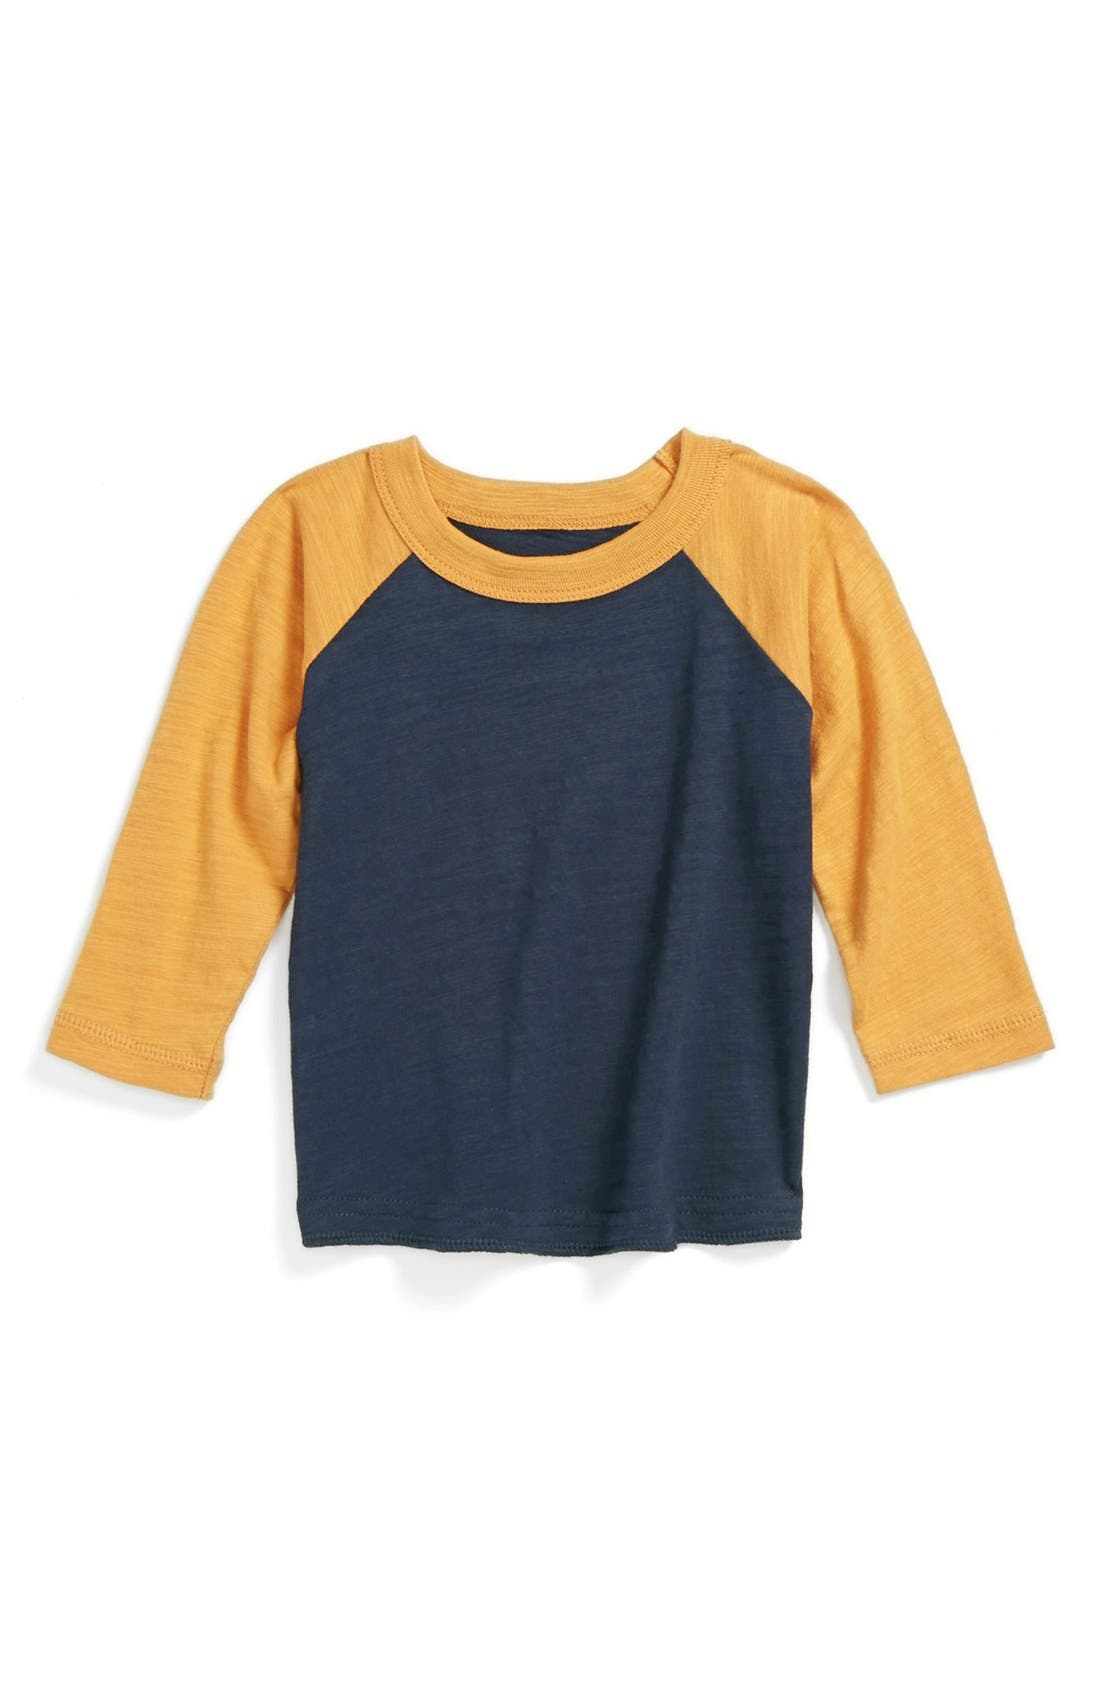 Main Image - Peek 'Field' Long Sleeve T-Shirt (Baby Boys)